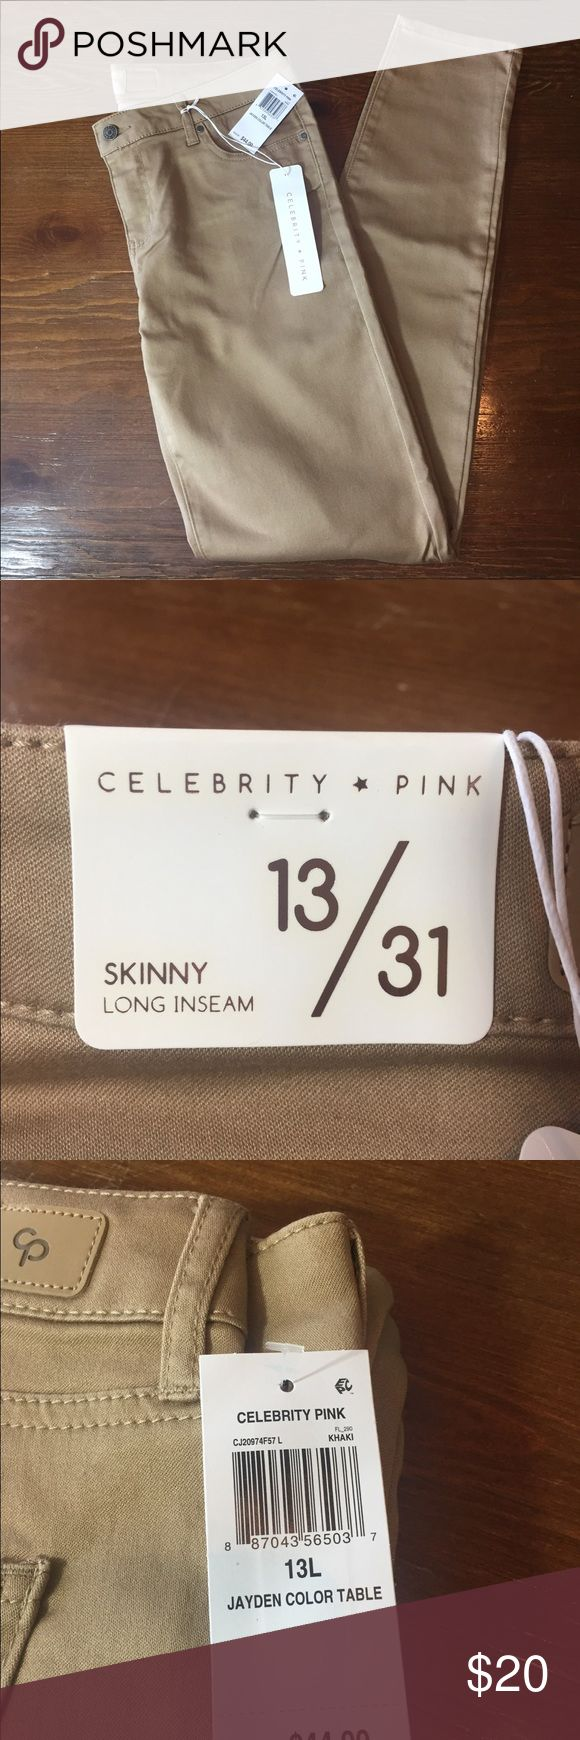 Celebrity Pink khaki Skinny Jeans Celebrity Pink khaki Skinny jeans. Measurements: *Waist - 33 in. *Inseam - 31 in. *Outseam - 42 in. *Leg opening - 6 in. *Front rise - 9.5 in. *Back Rise - 13 in. *Hips - 19 in.   NWT! Celebrity Pink Pants Skinny